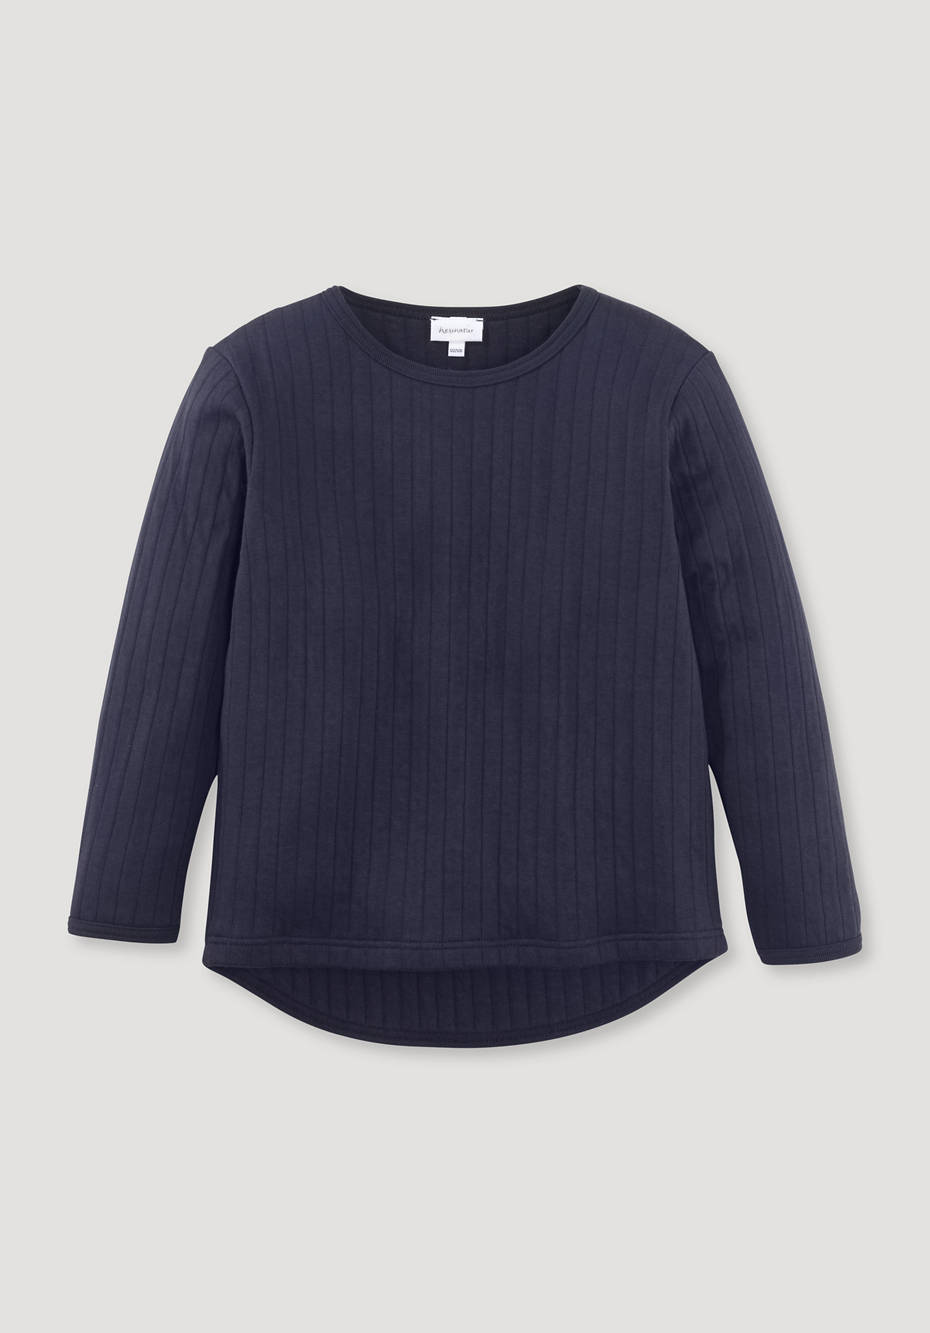 Quilted sweatshirt made of pure organic cotton